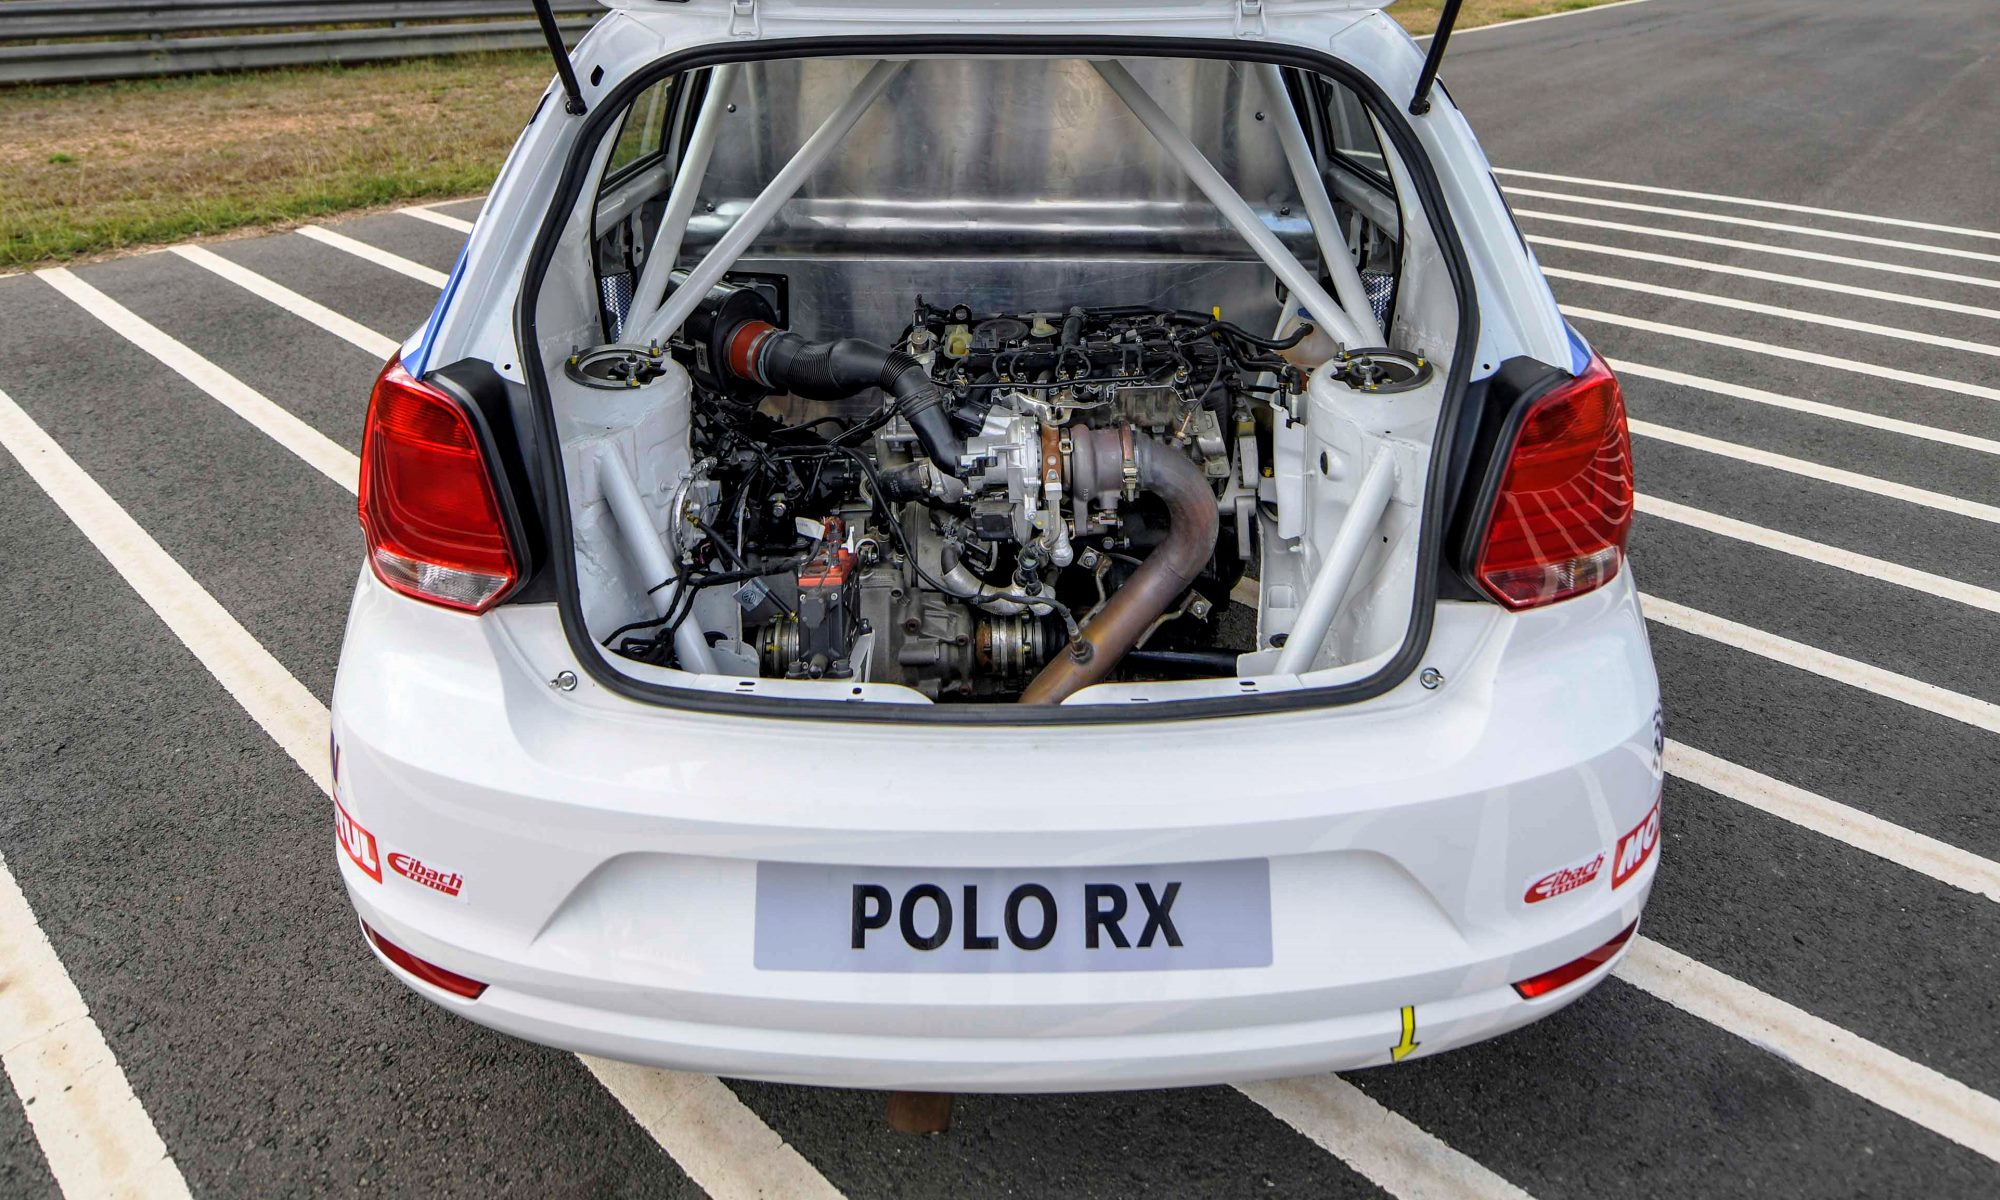 VW Polo RX engine